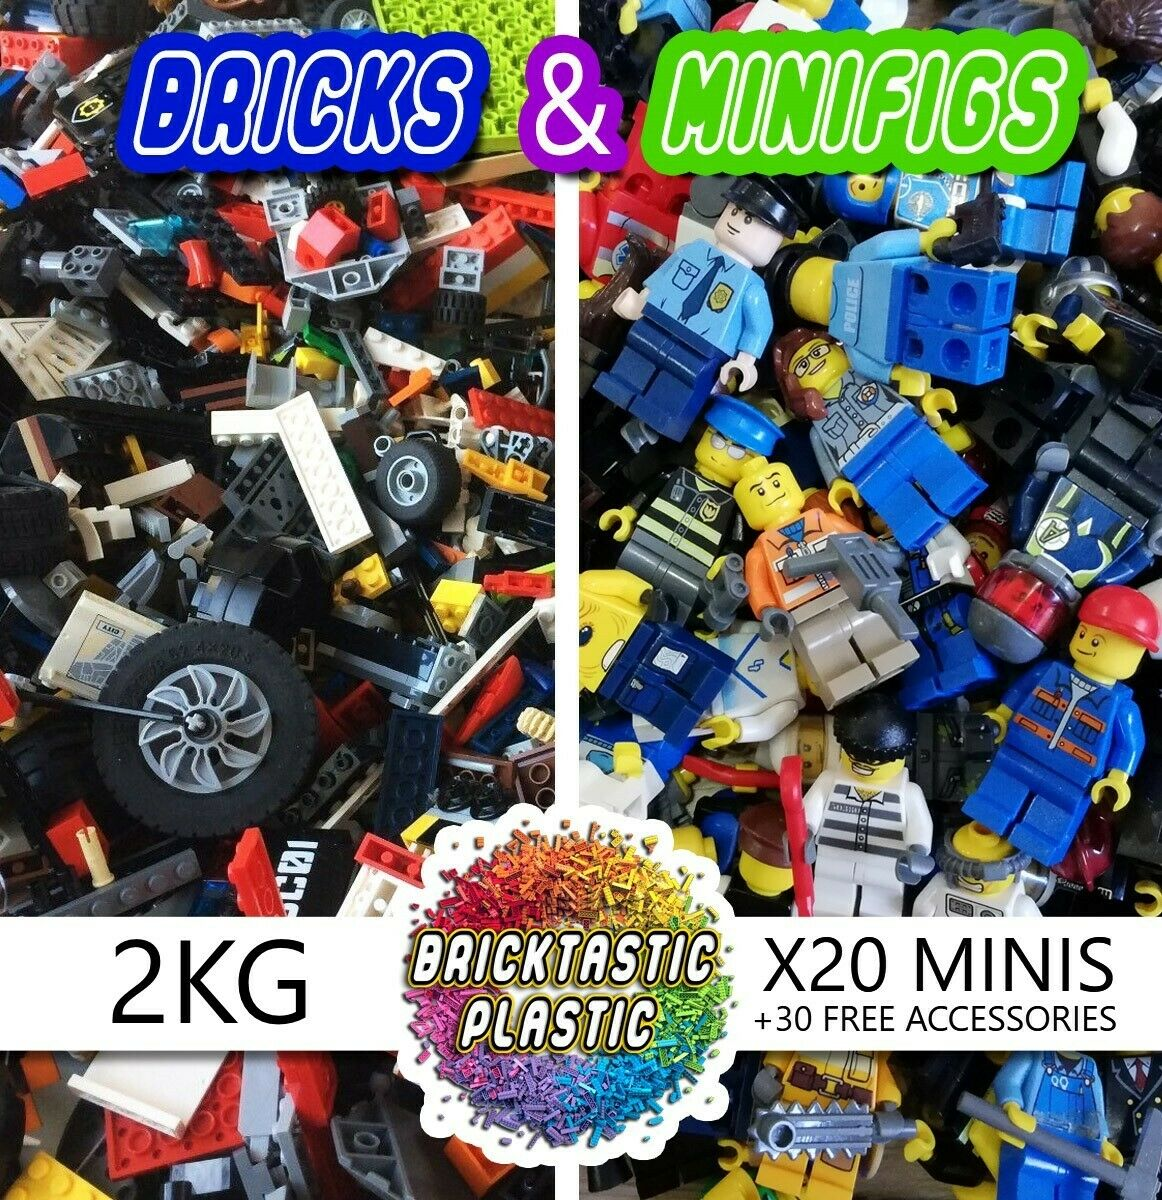 2 KG x1750pc's LEGO CREATIVITY PACK +20 MINIFIGURES + x30 FREE ACCESSORIES